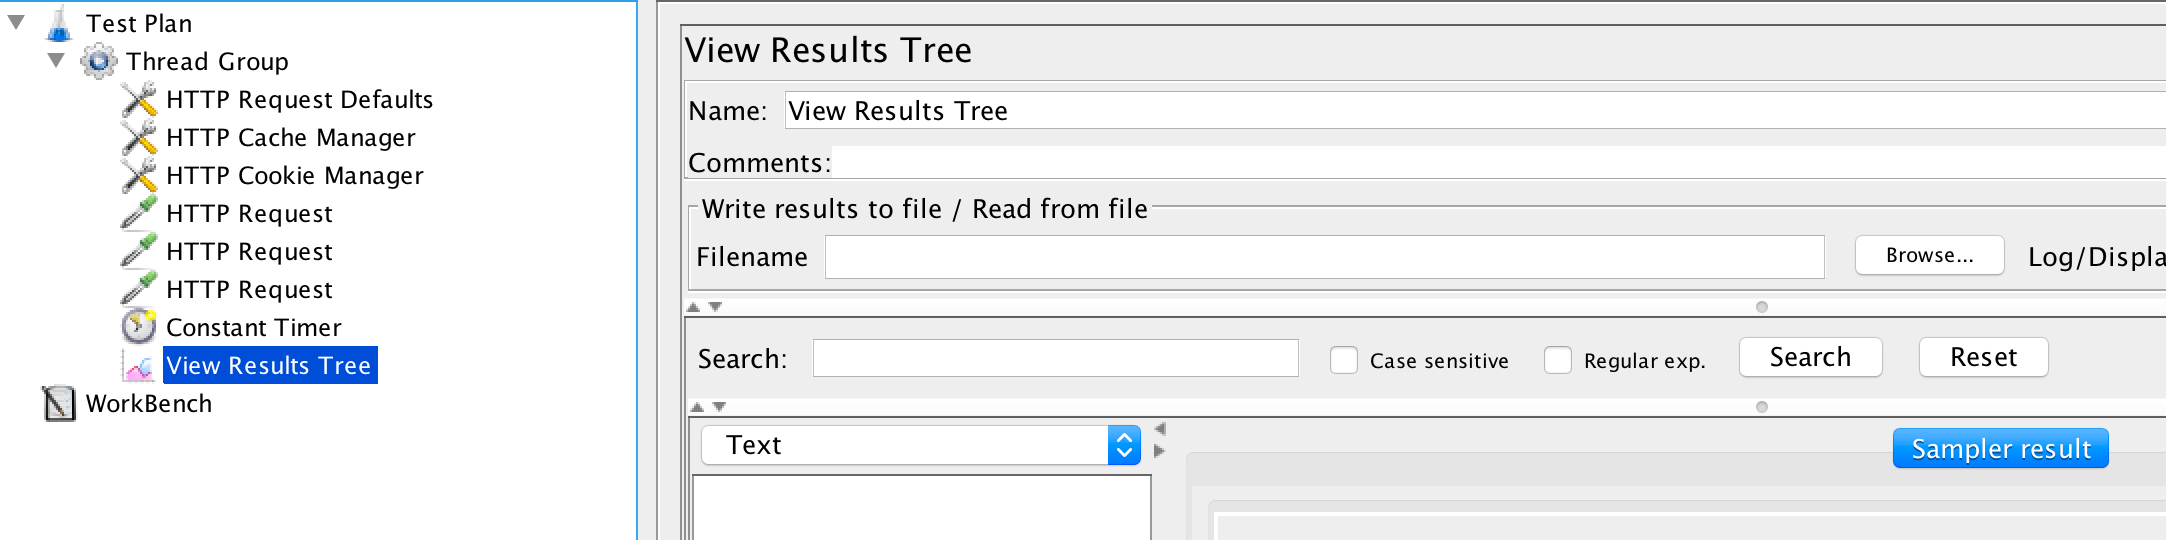 JMeter View Results Tree - Learn how